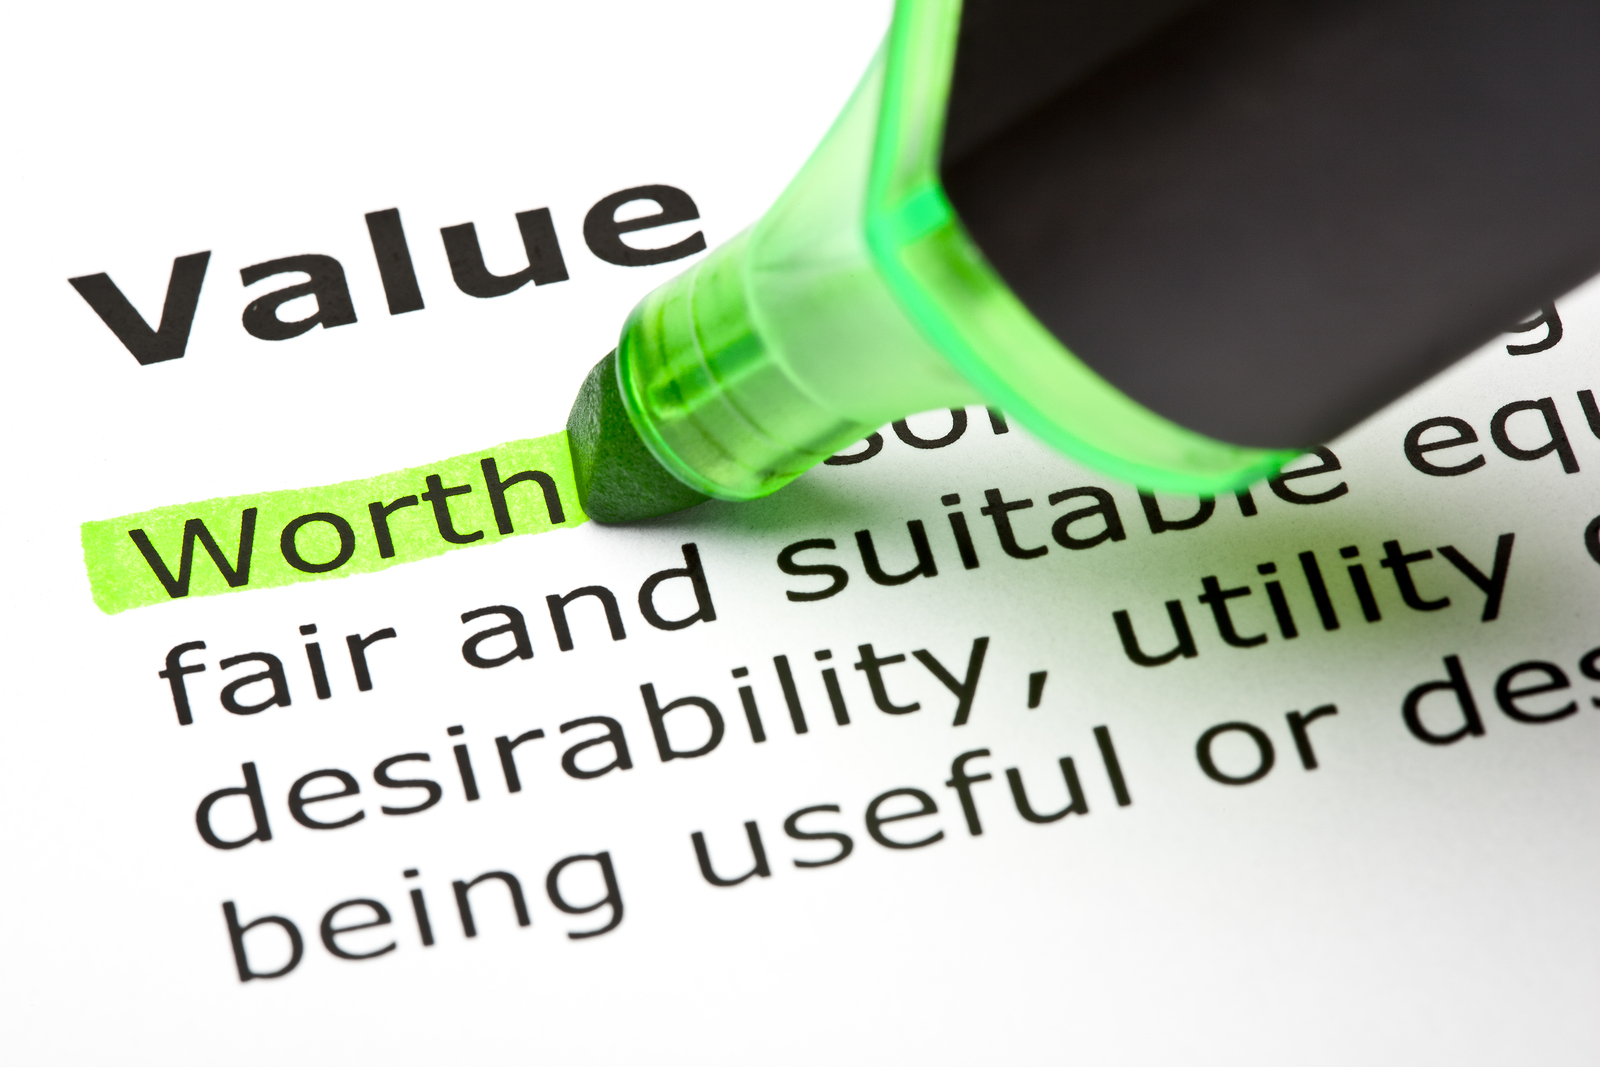 Comparing-Perceived-Value-Drivers-For-Employees-and-Customers-Michael-Lowenstein-featured-image